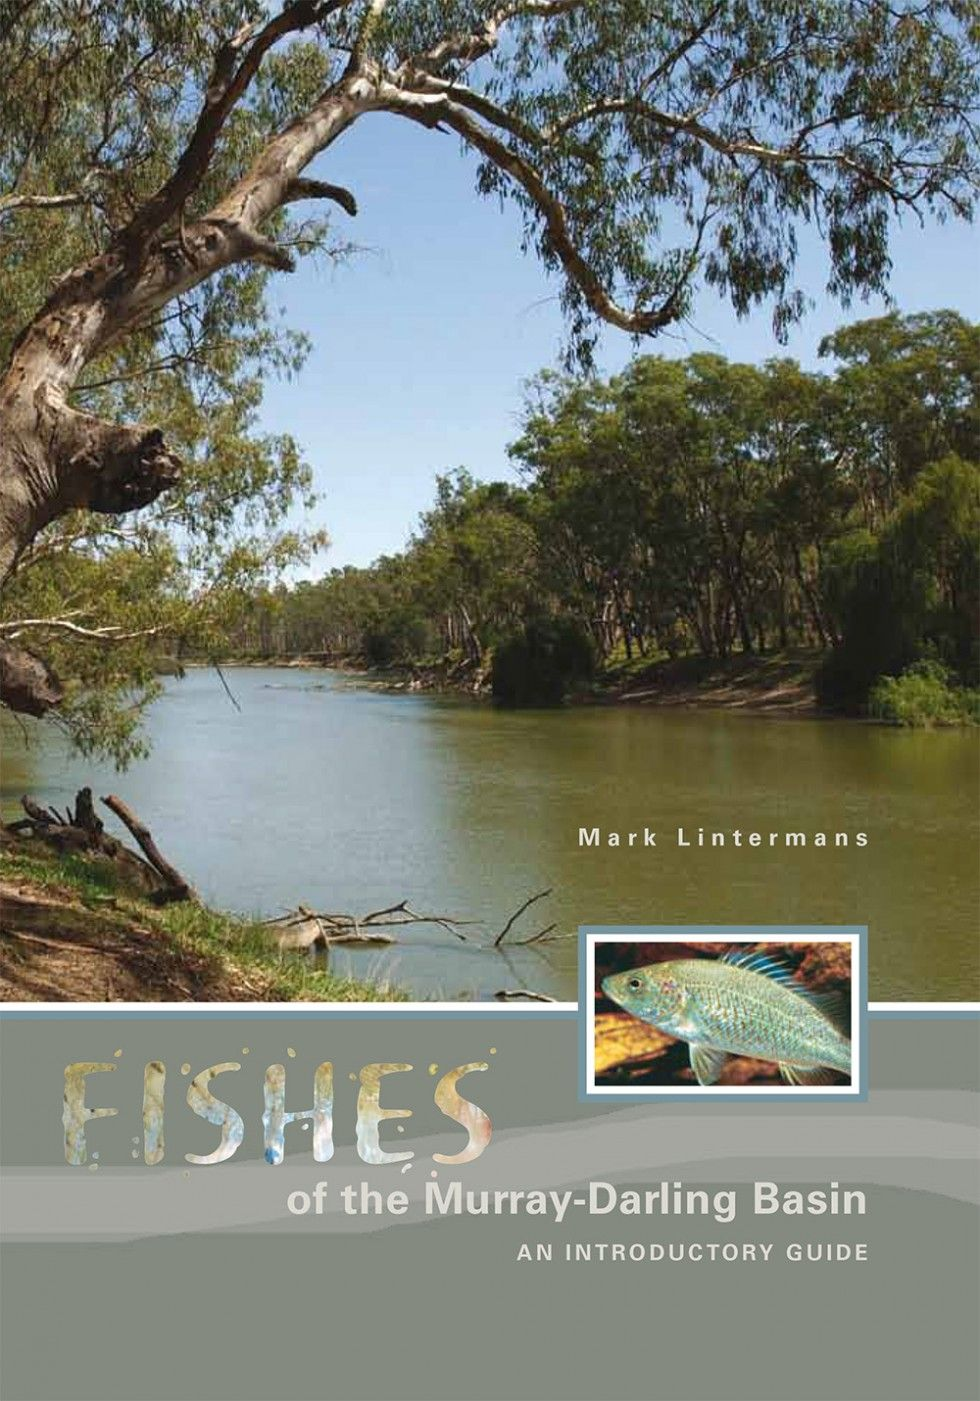 Fishes of the Murray-Darling Basin: an Introductory Guide